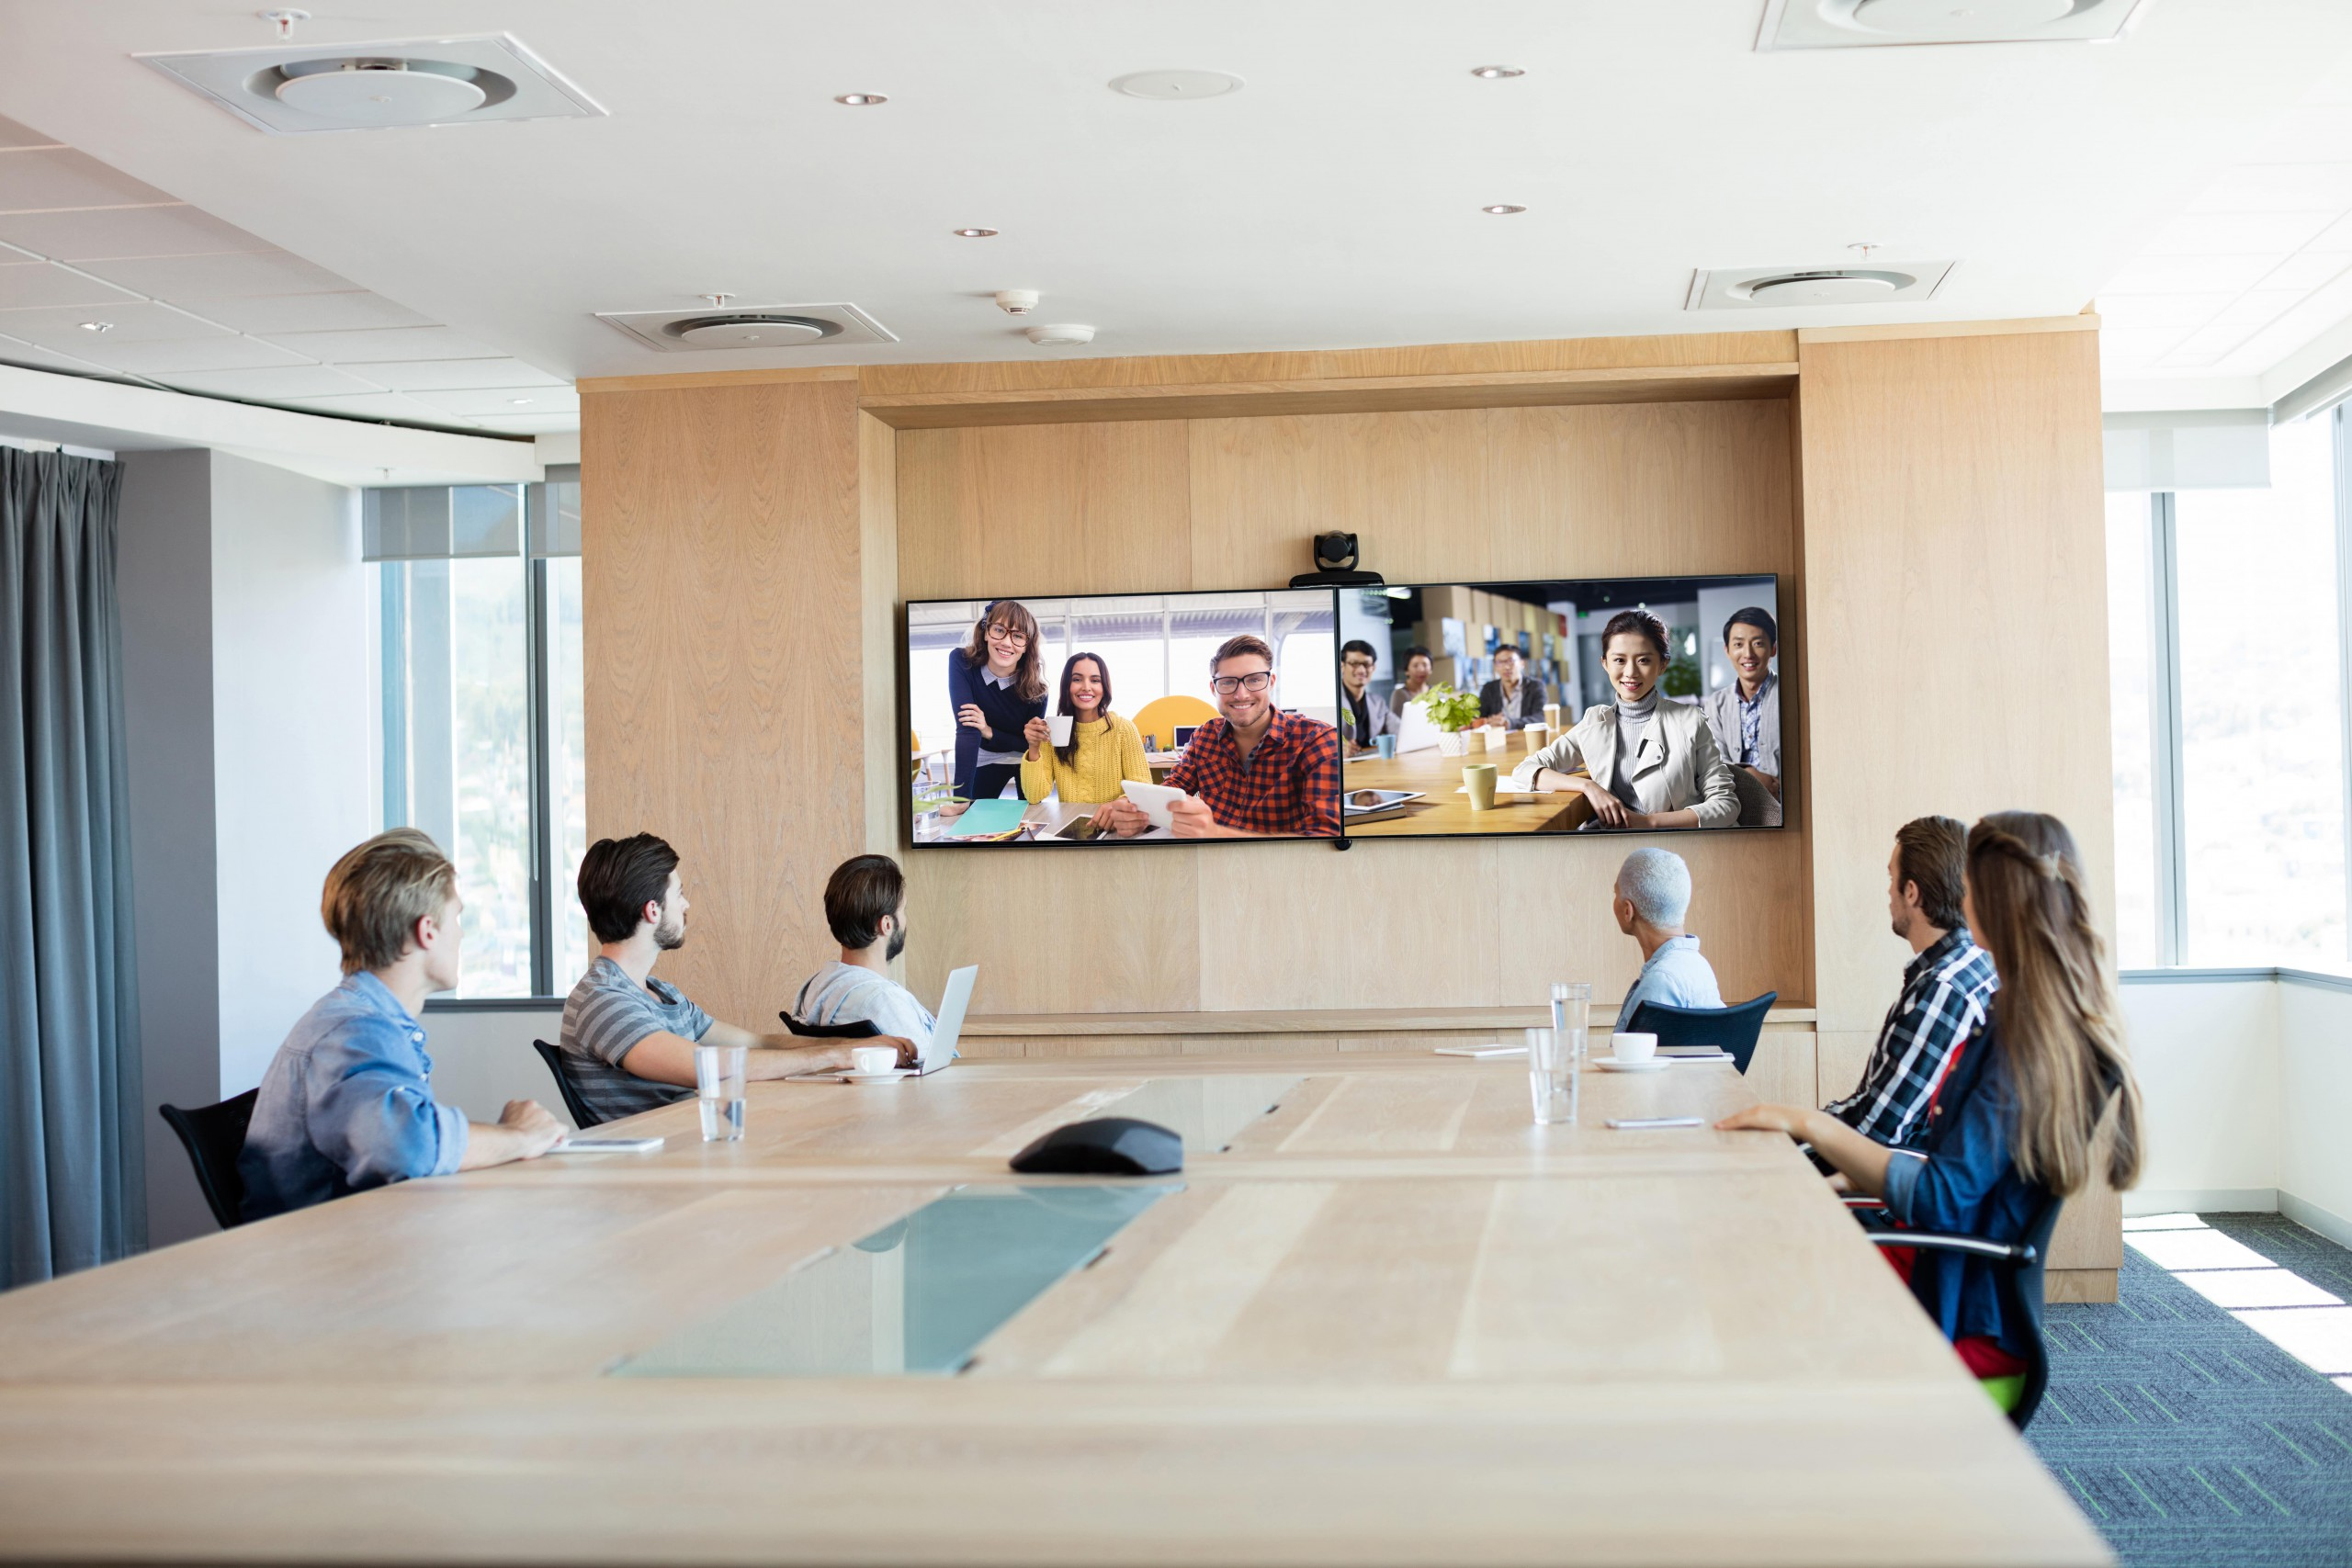 conference room with people video chatting with other offices